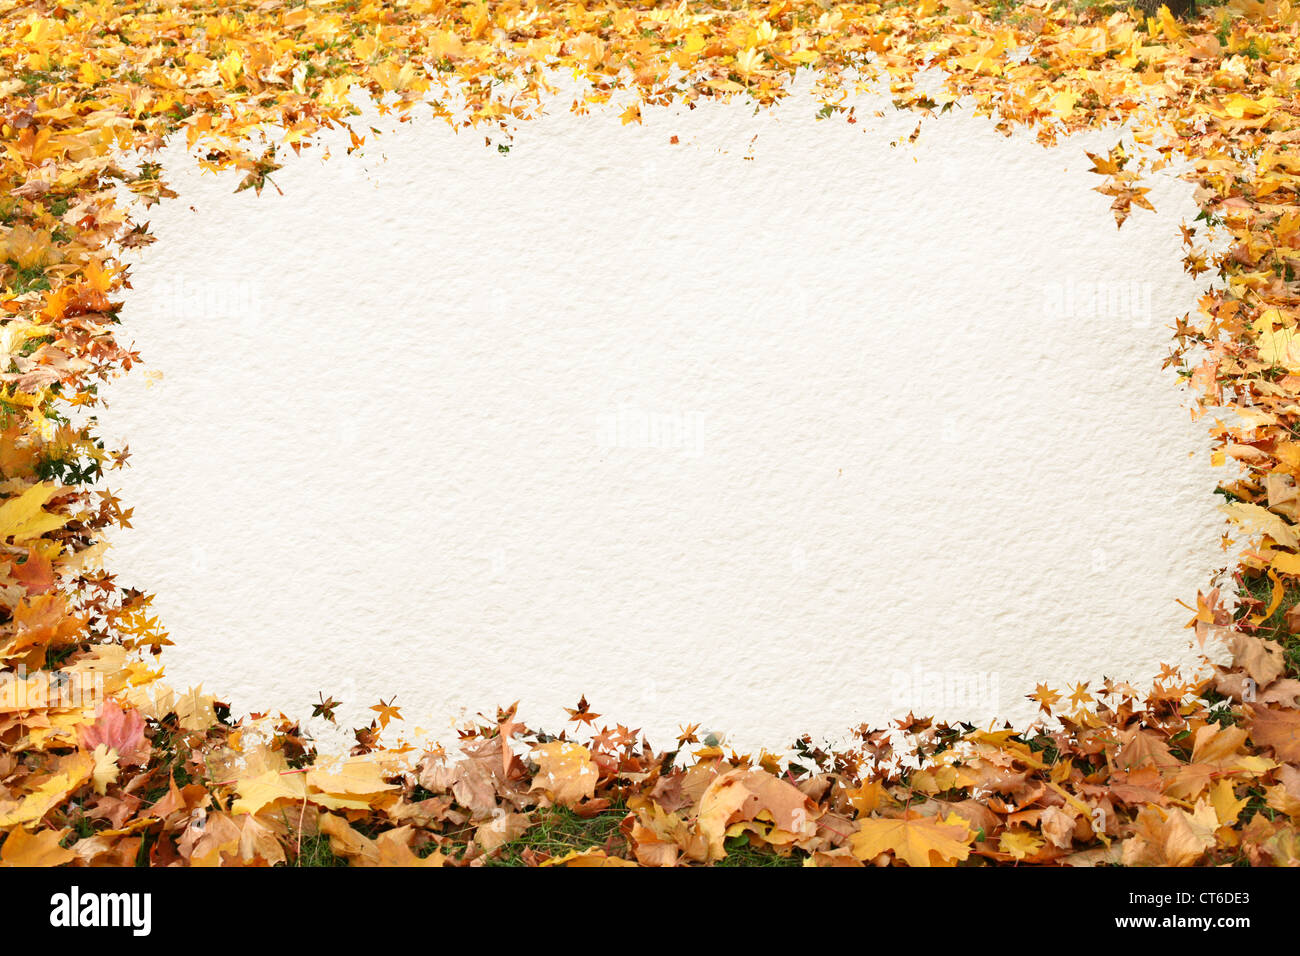 Autumn leaves frame for your text - Stock Image